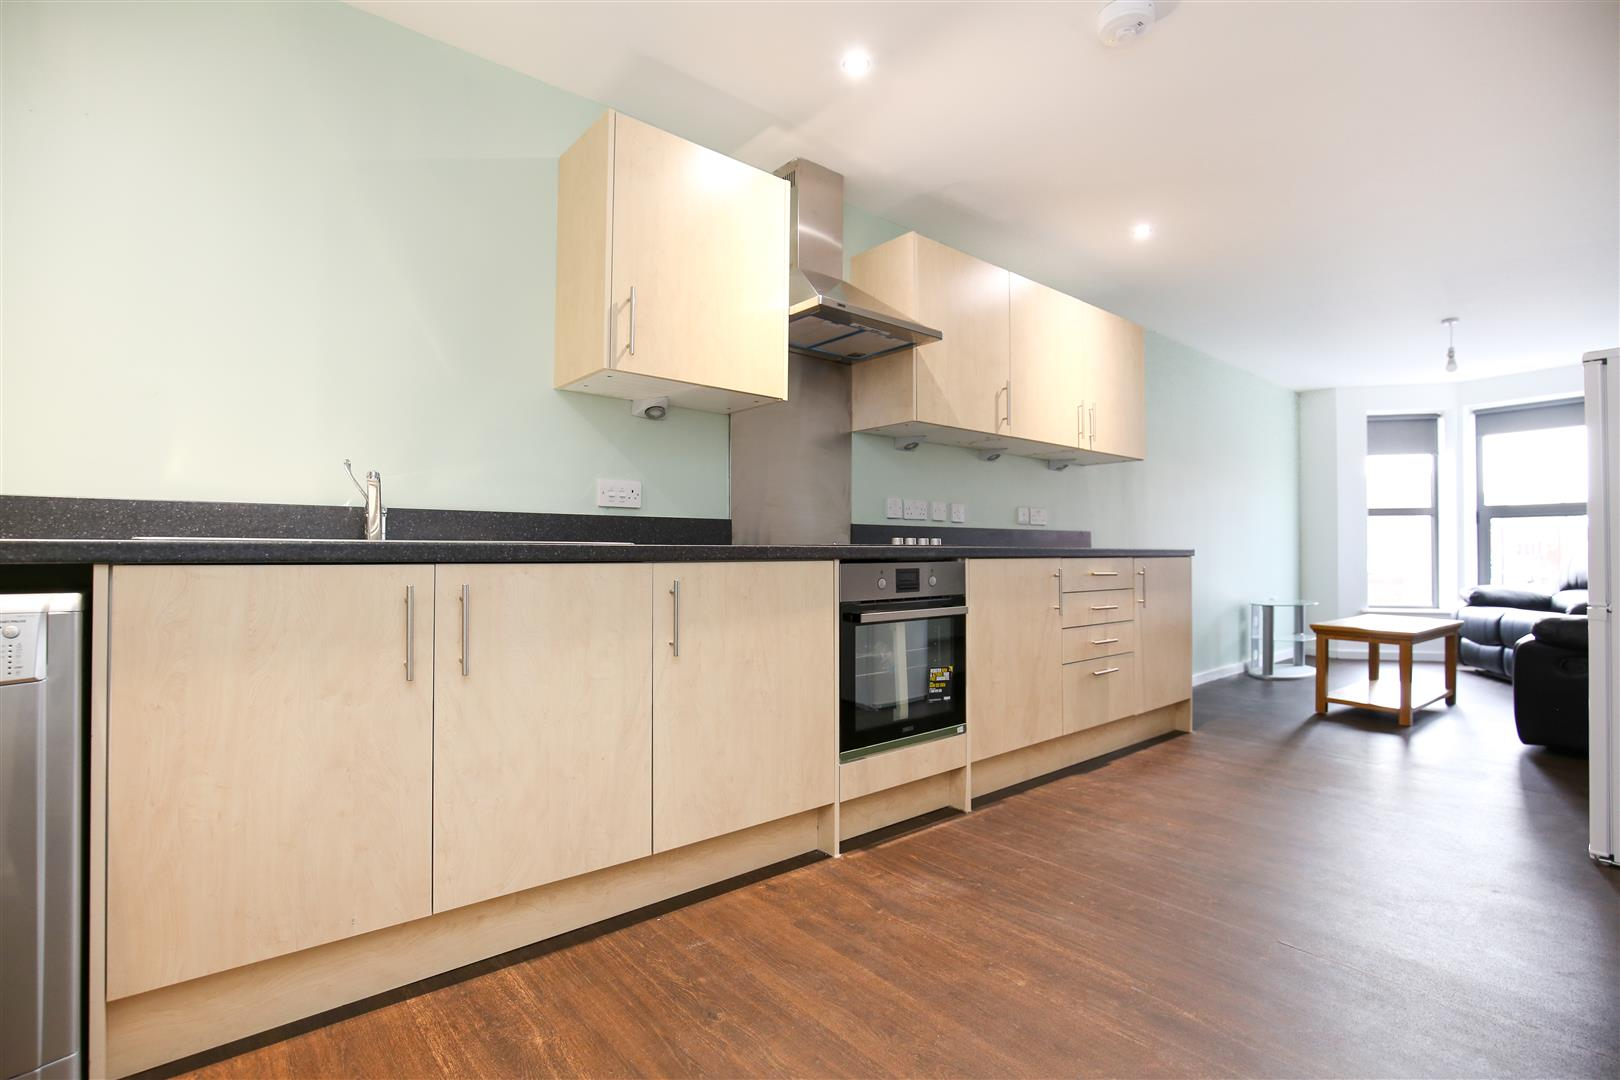 2 bed apartment to rent in Newcastle Upon Tyne, NE6 5BL 2